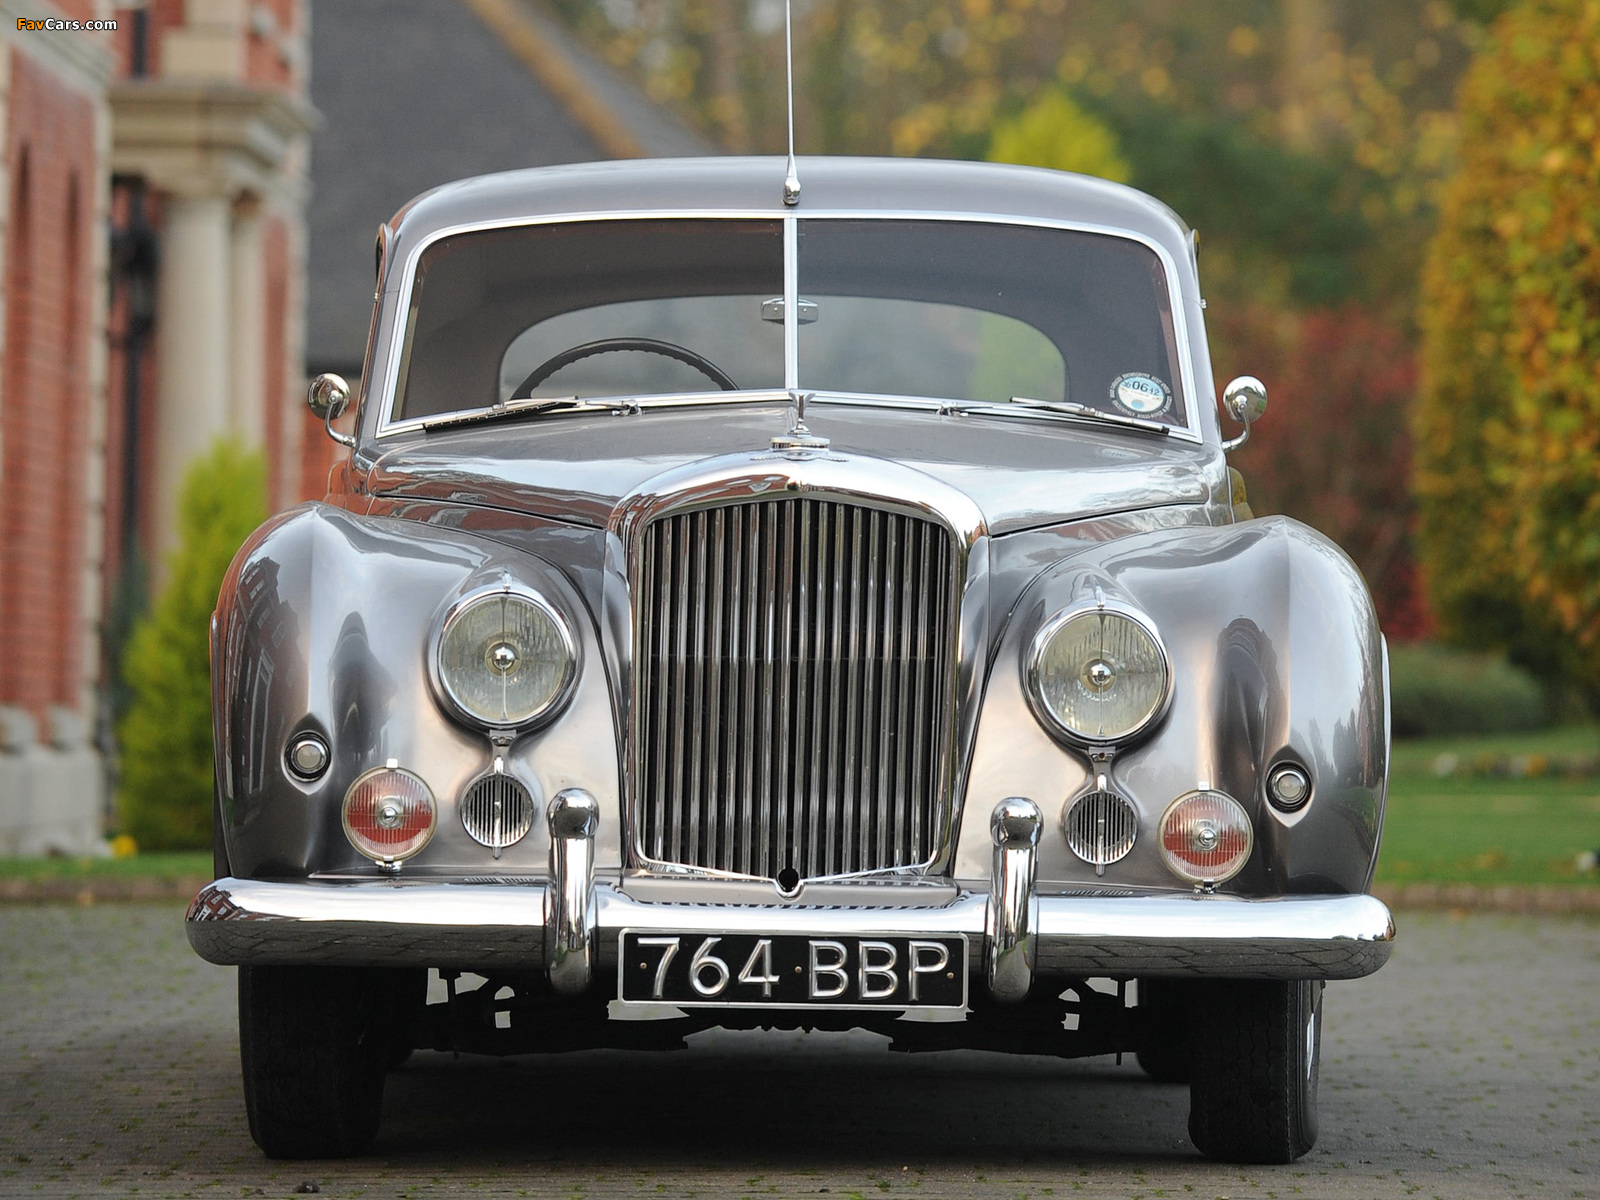 Bentley R-Type 4.6 Litre Coupe by Abbott 1954 images (1600 x 1200)